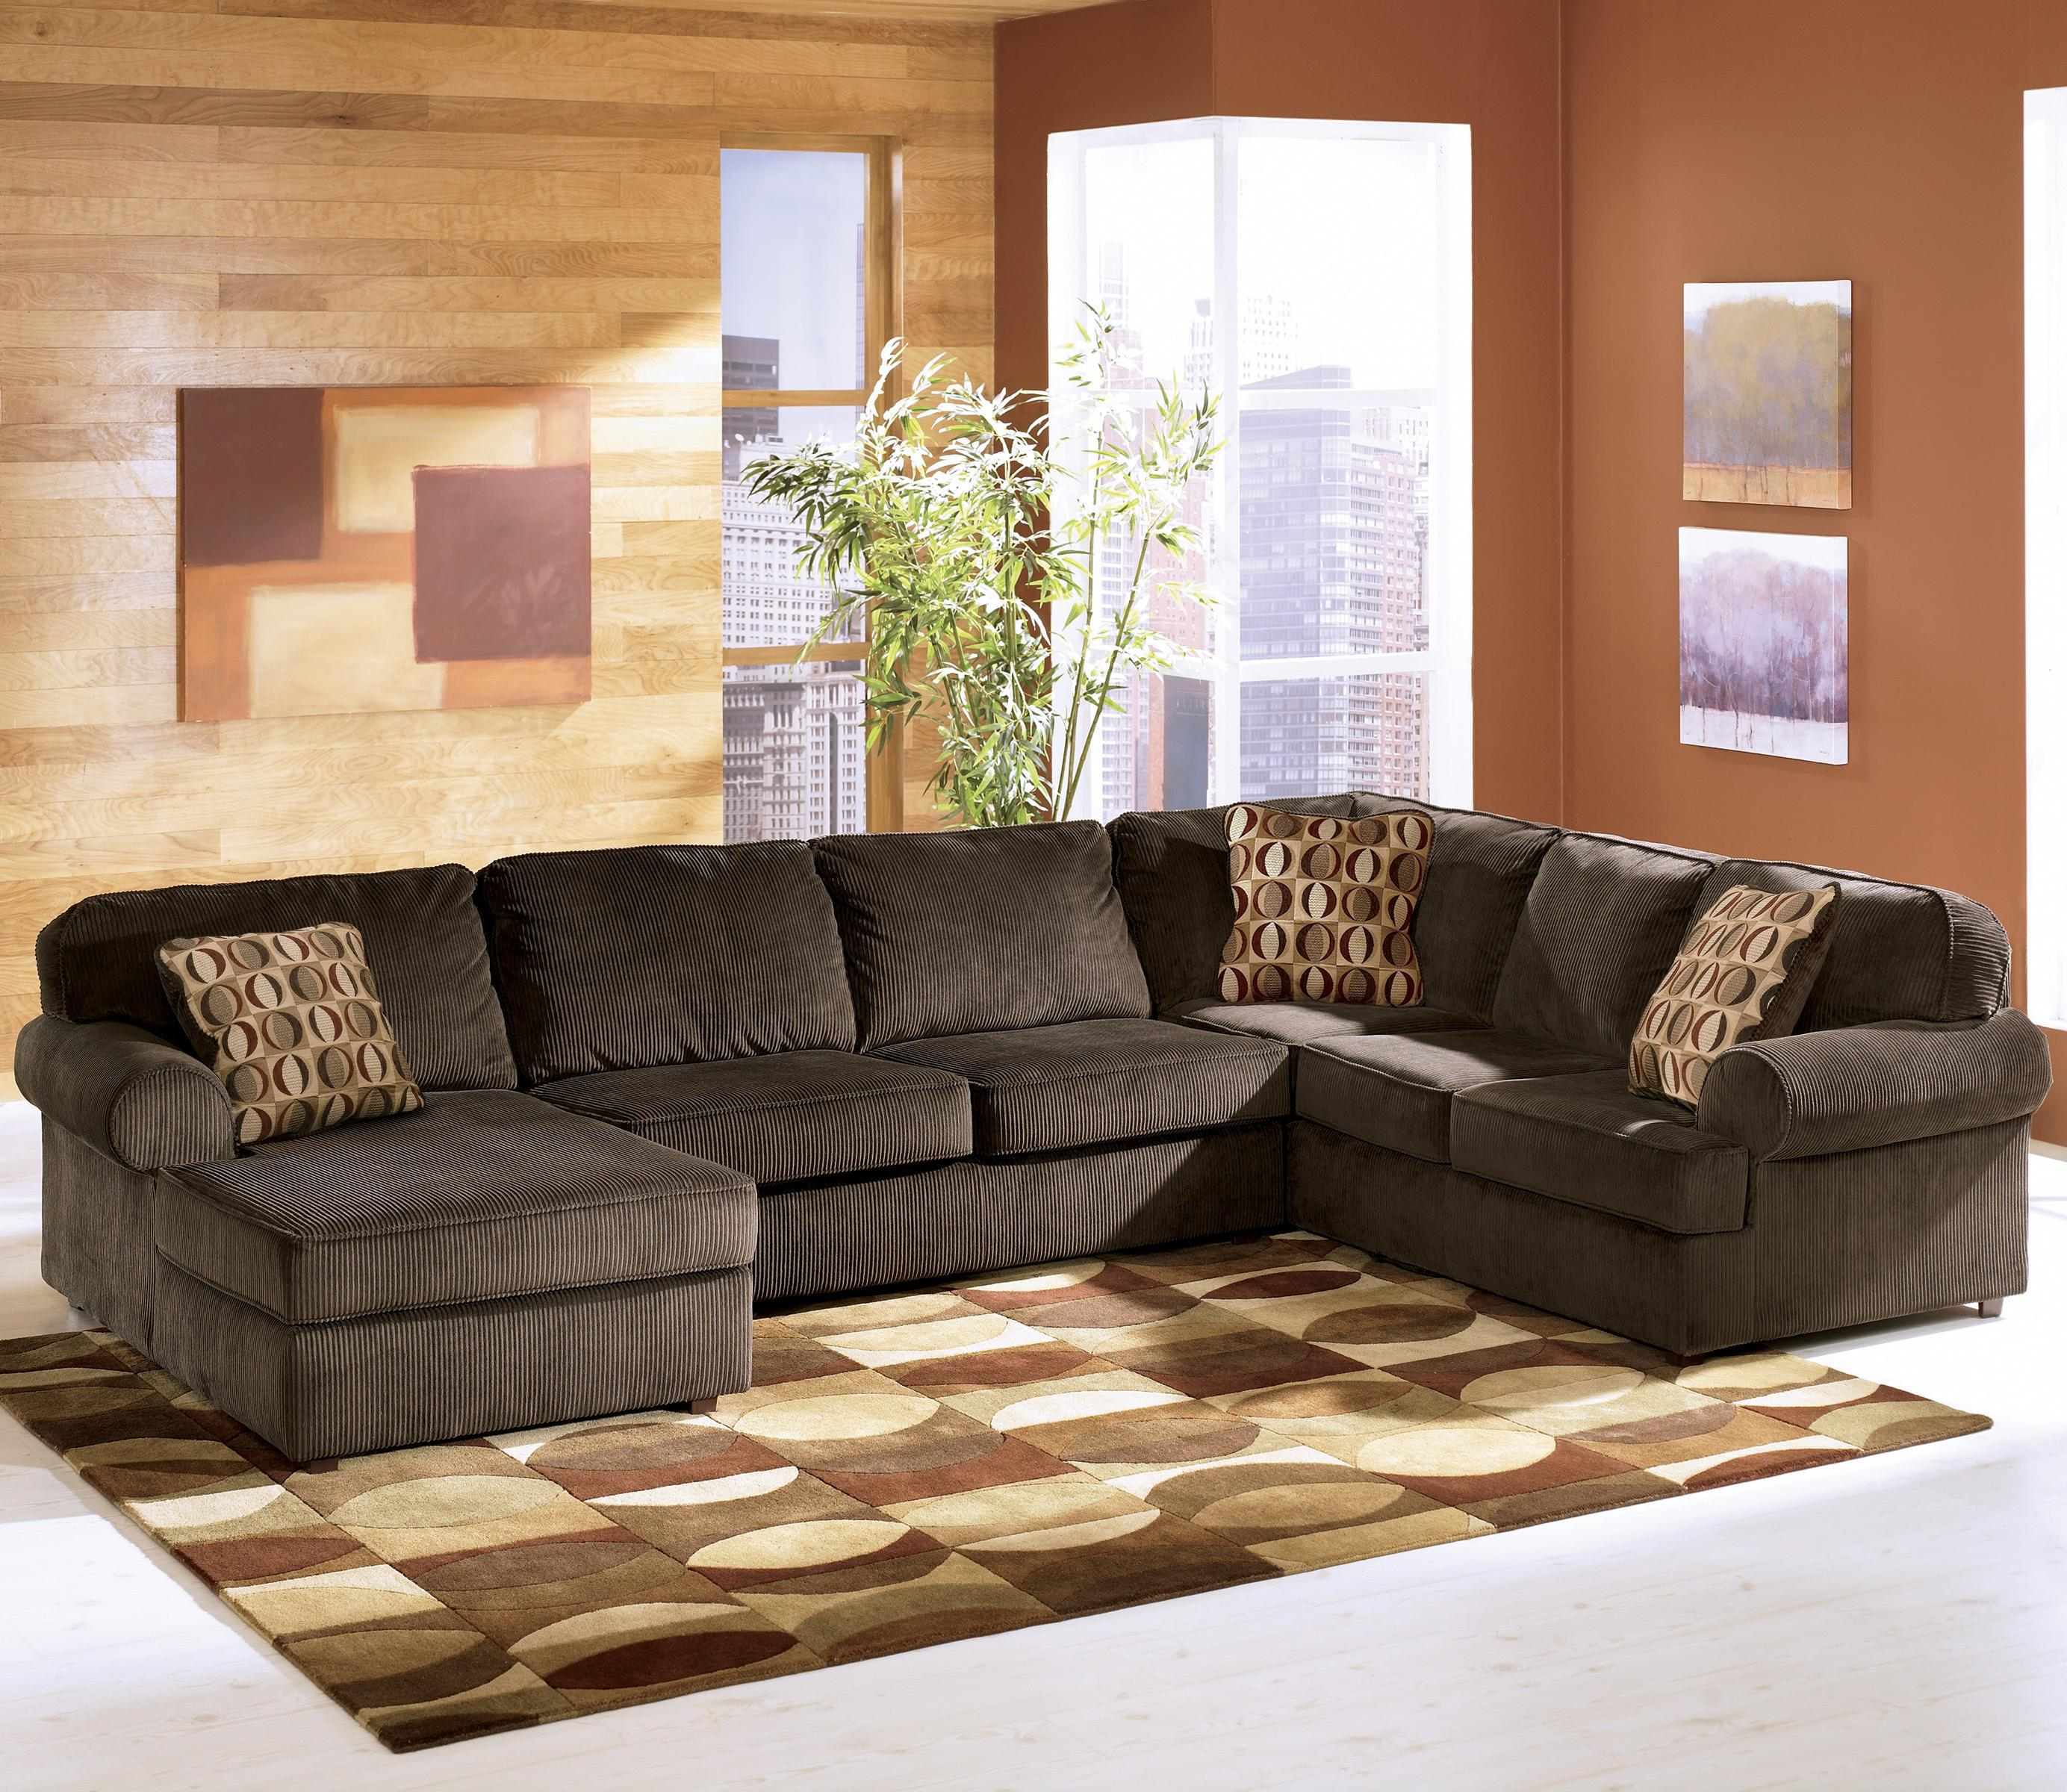 Awesome Ashley Furniture Jacksonville Fl For Home Furniture With Ashley Furniture Jacksonville